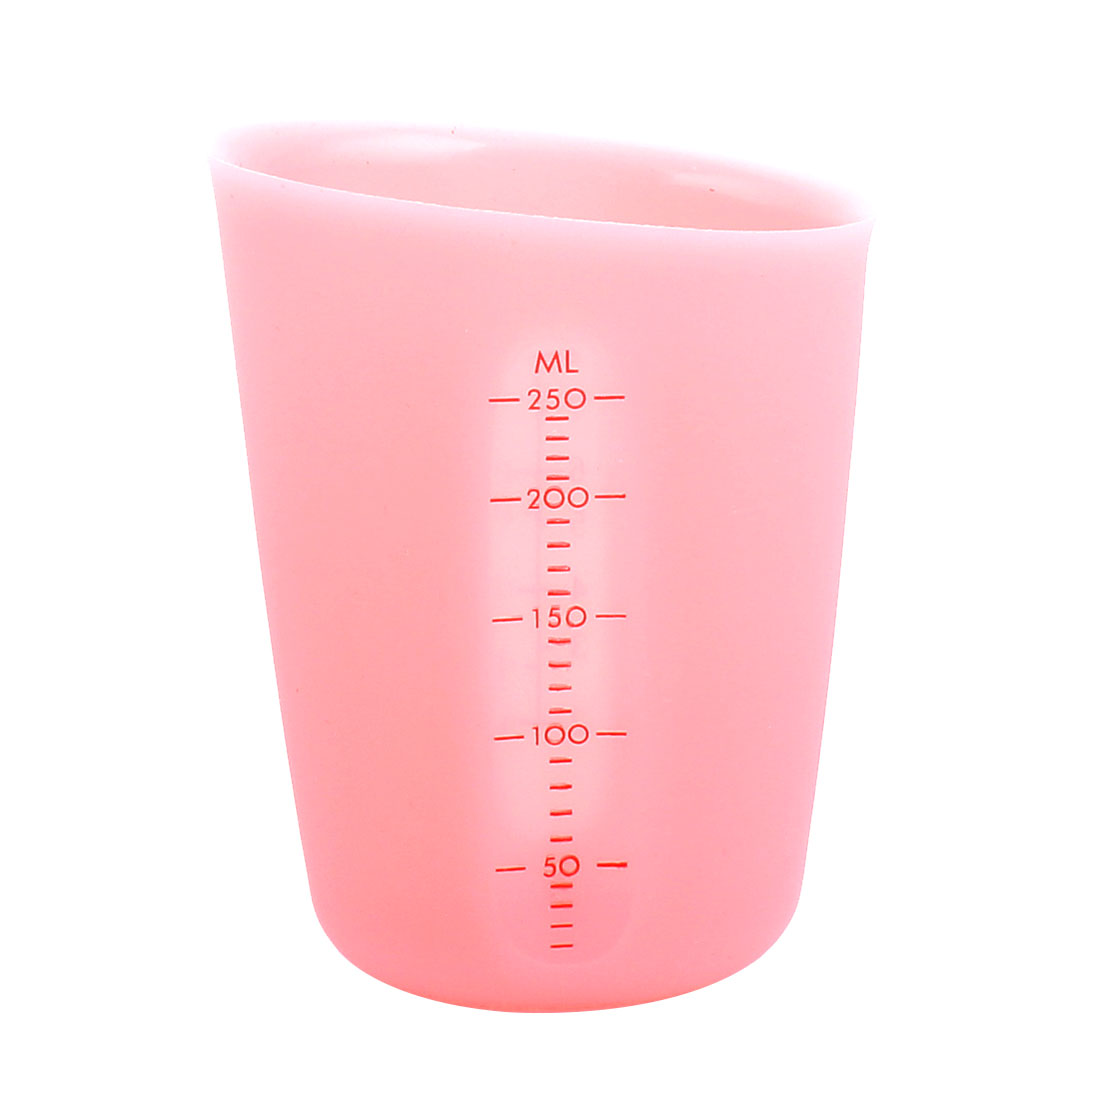 250ml Capacity Silicone Food Liquid Kitchen Measuring Cup Pink by Unique-Bargains